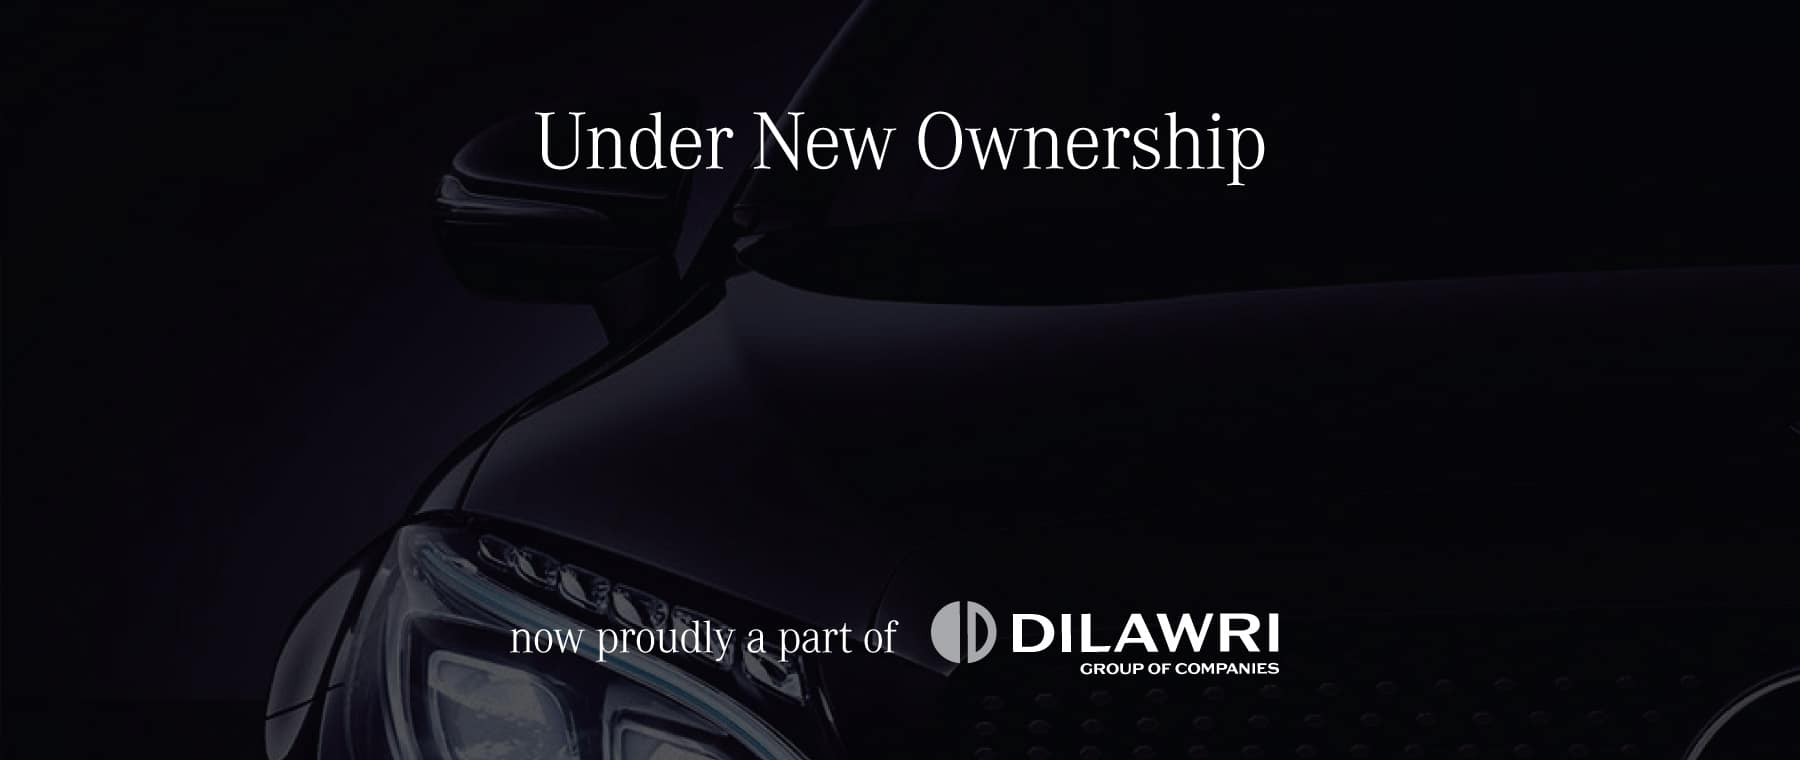 Under New Ownership - Now part of Dilawri Group of Companies